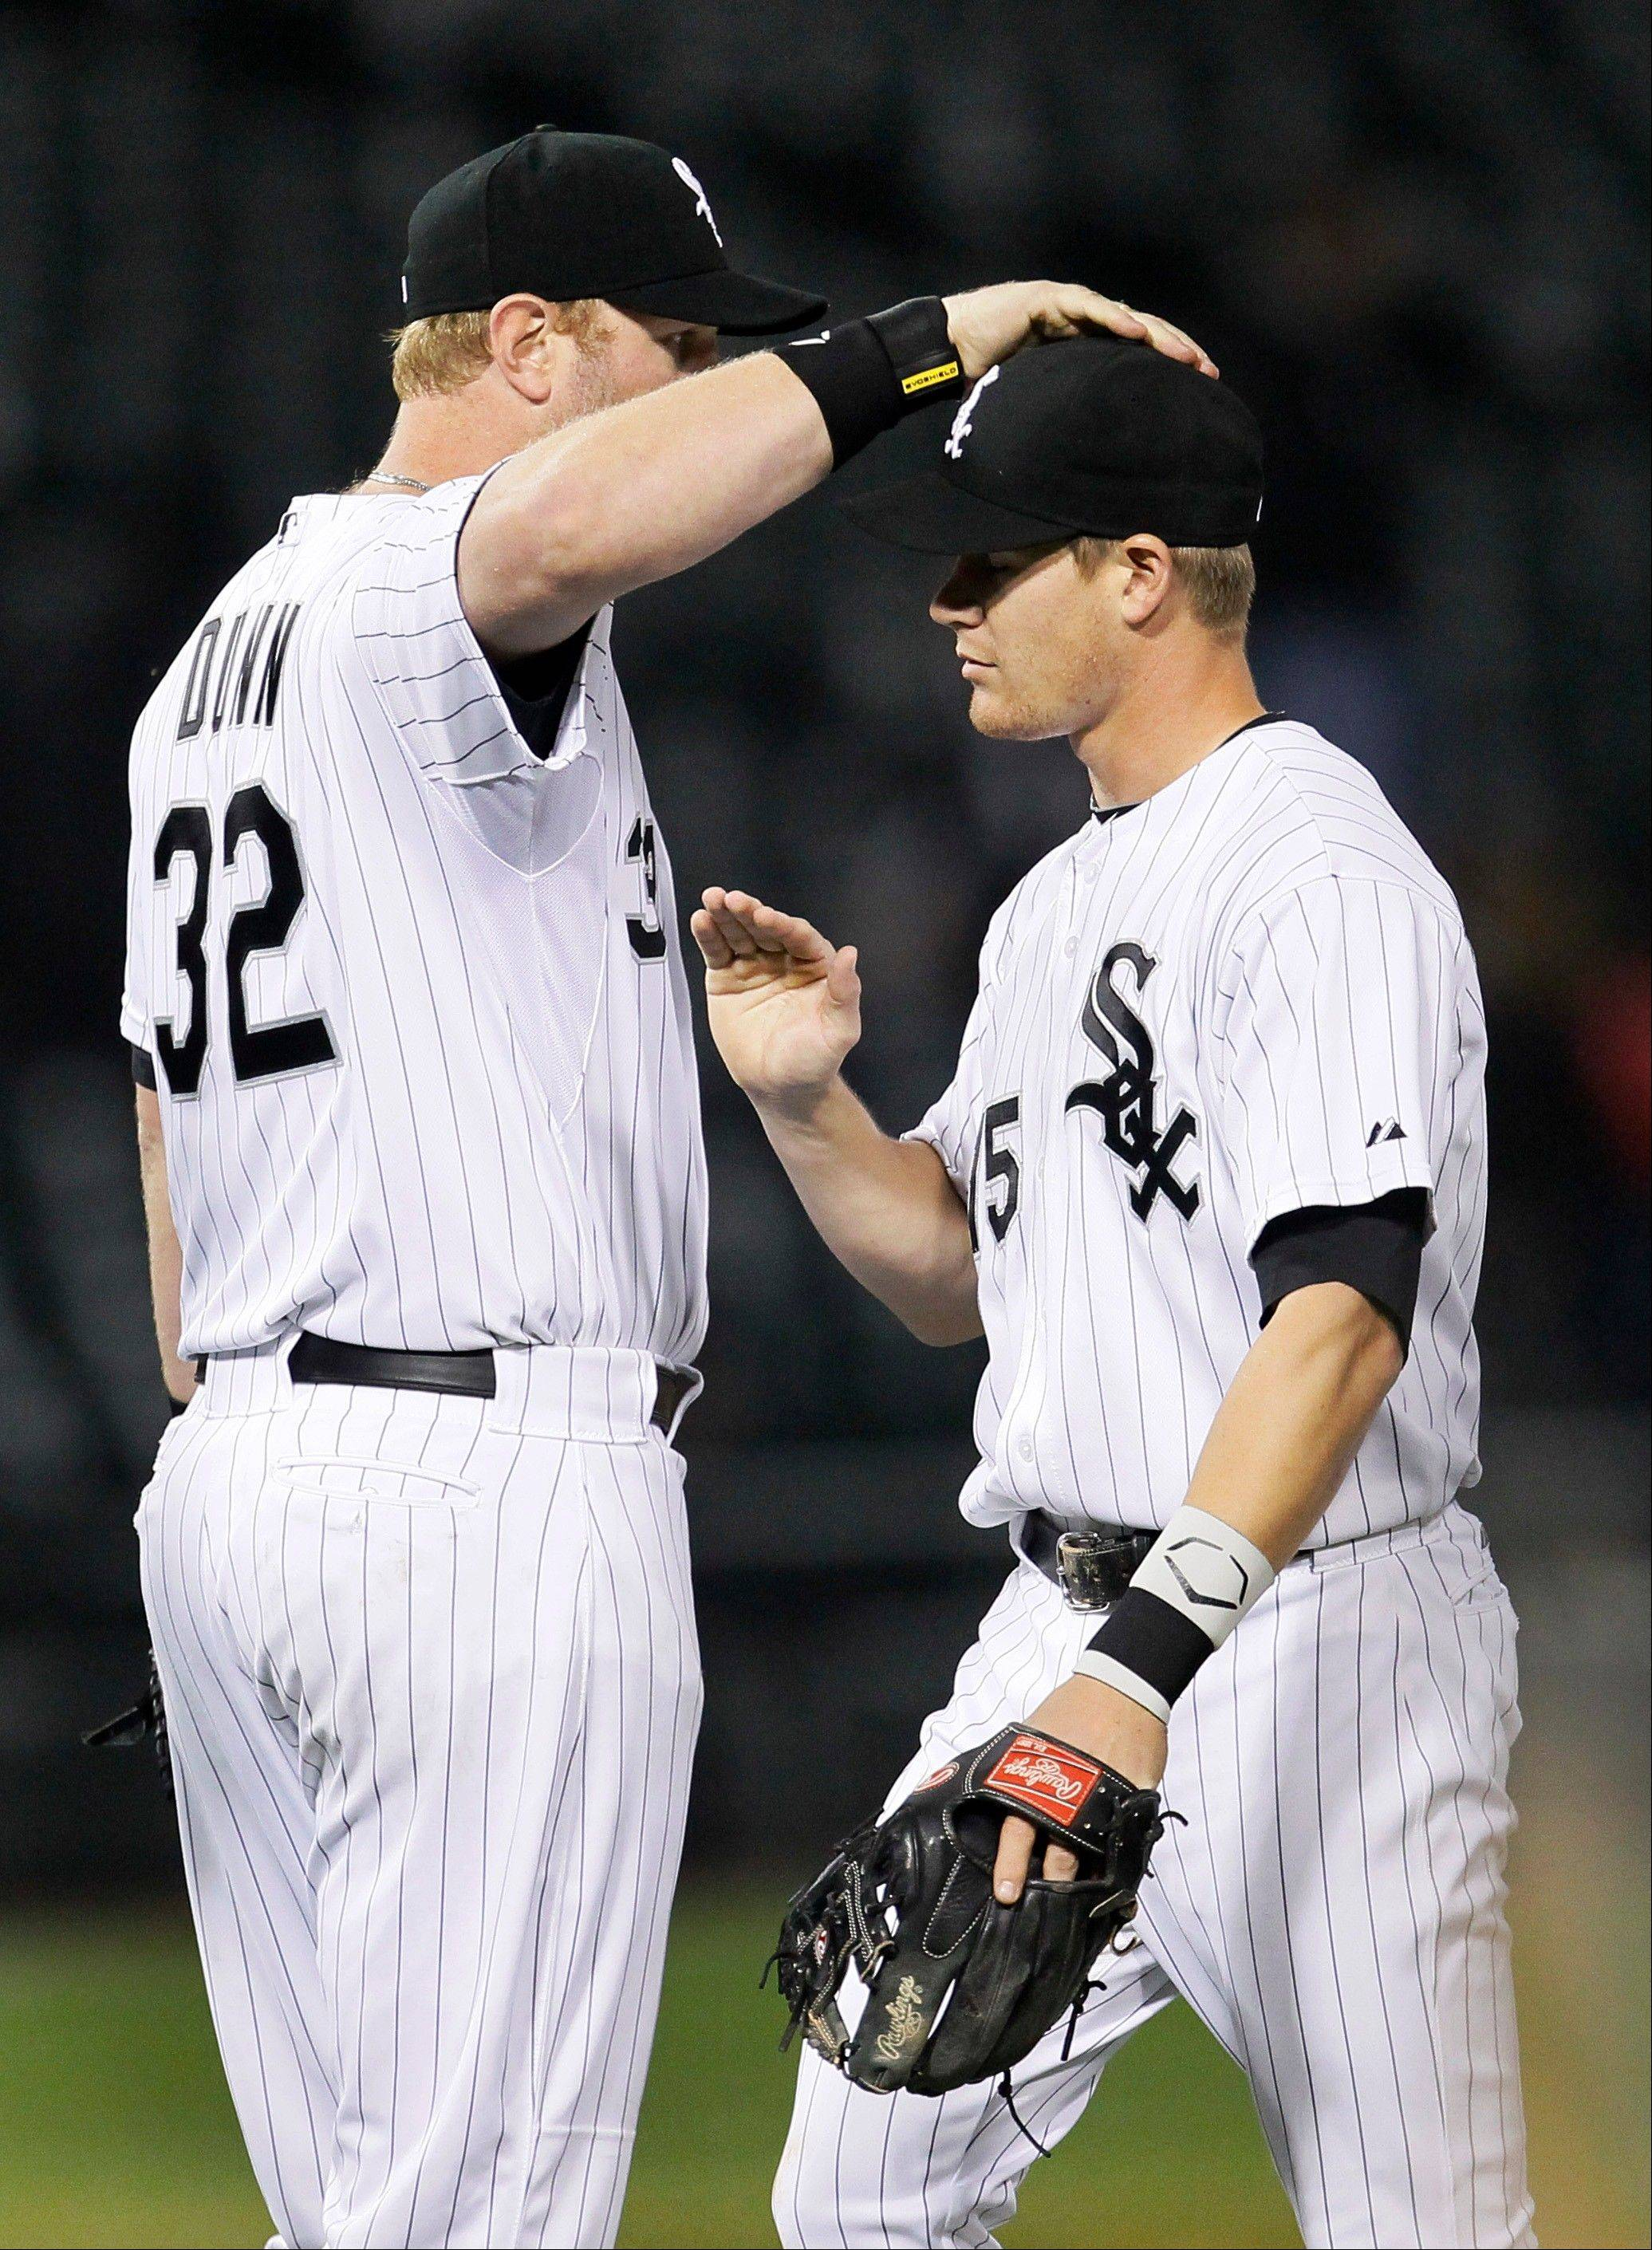 White Sox first baseman Adam Dunn pats second baseman Gordon Beckham on the head after the White Sox 7-2 win over the Cleveland Indians.